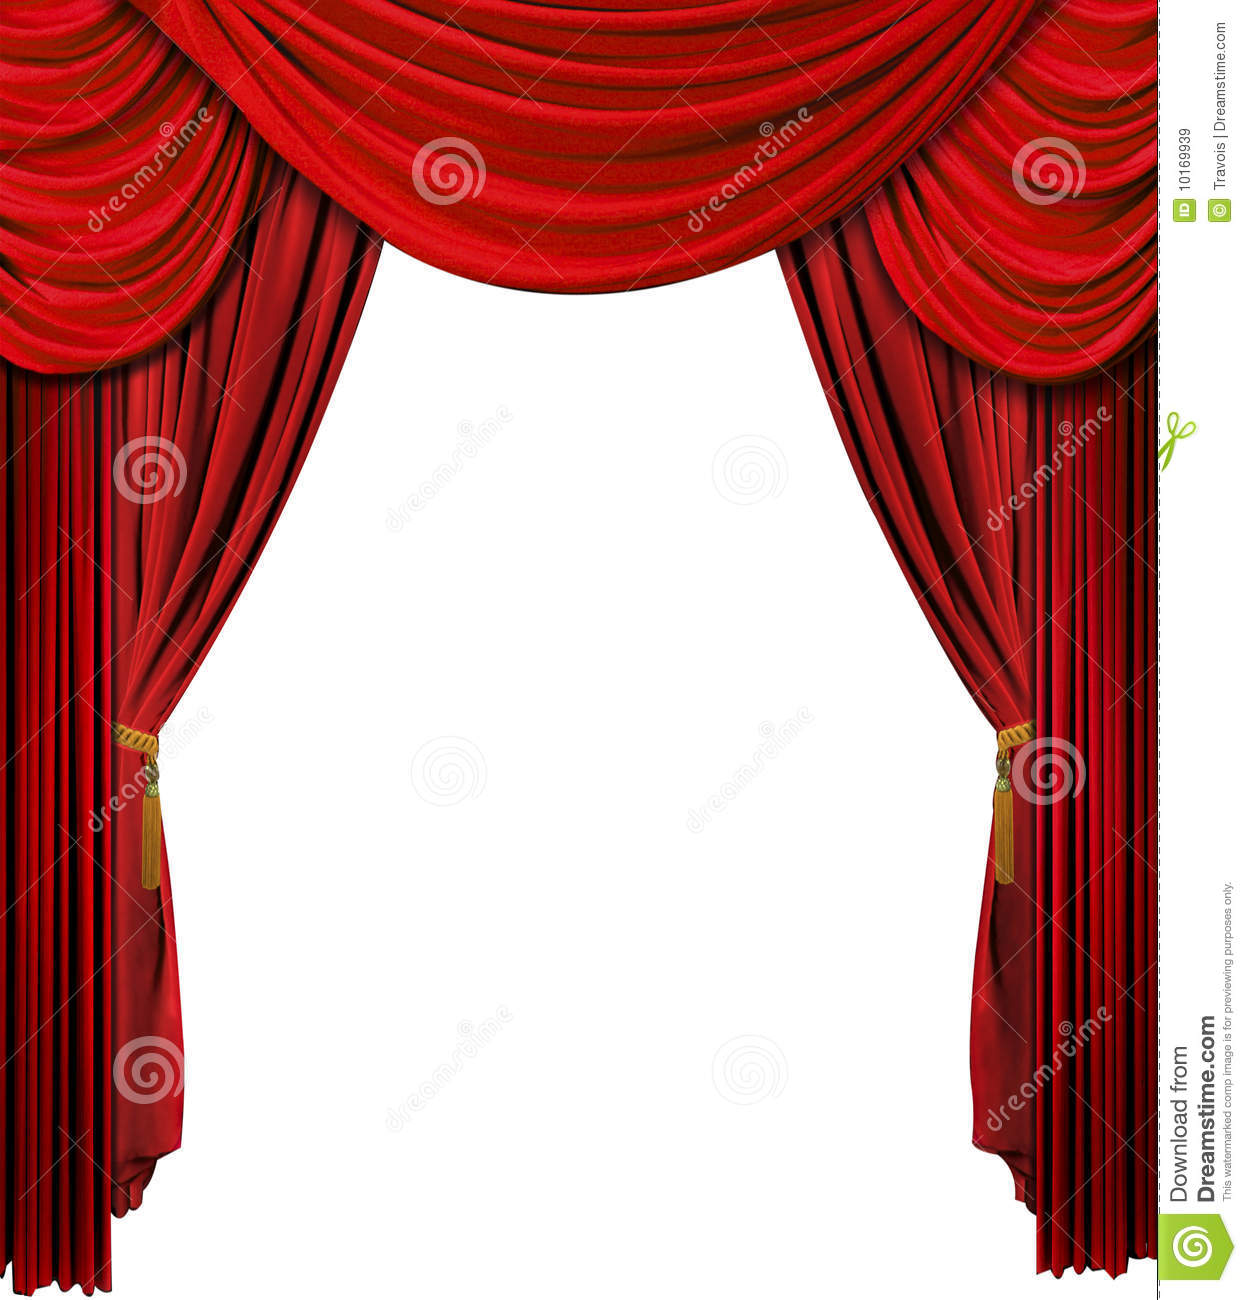 hight resolution of old fashioned theater stage velvet curtain over white background